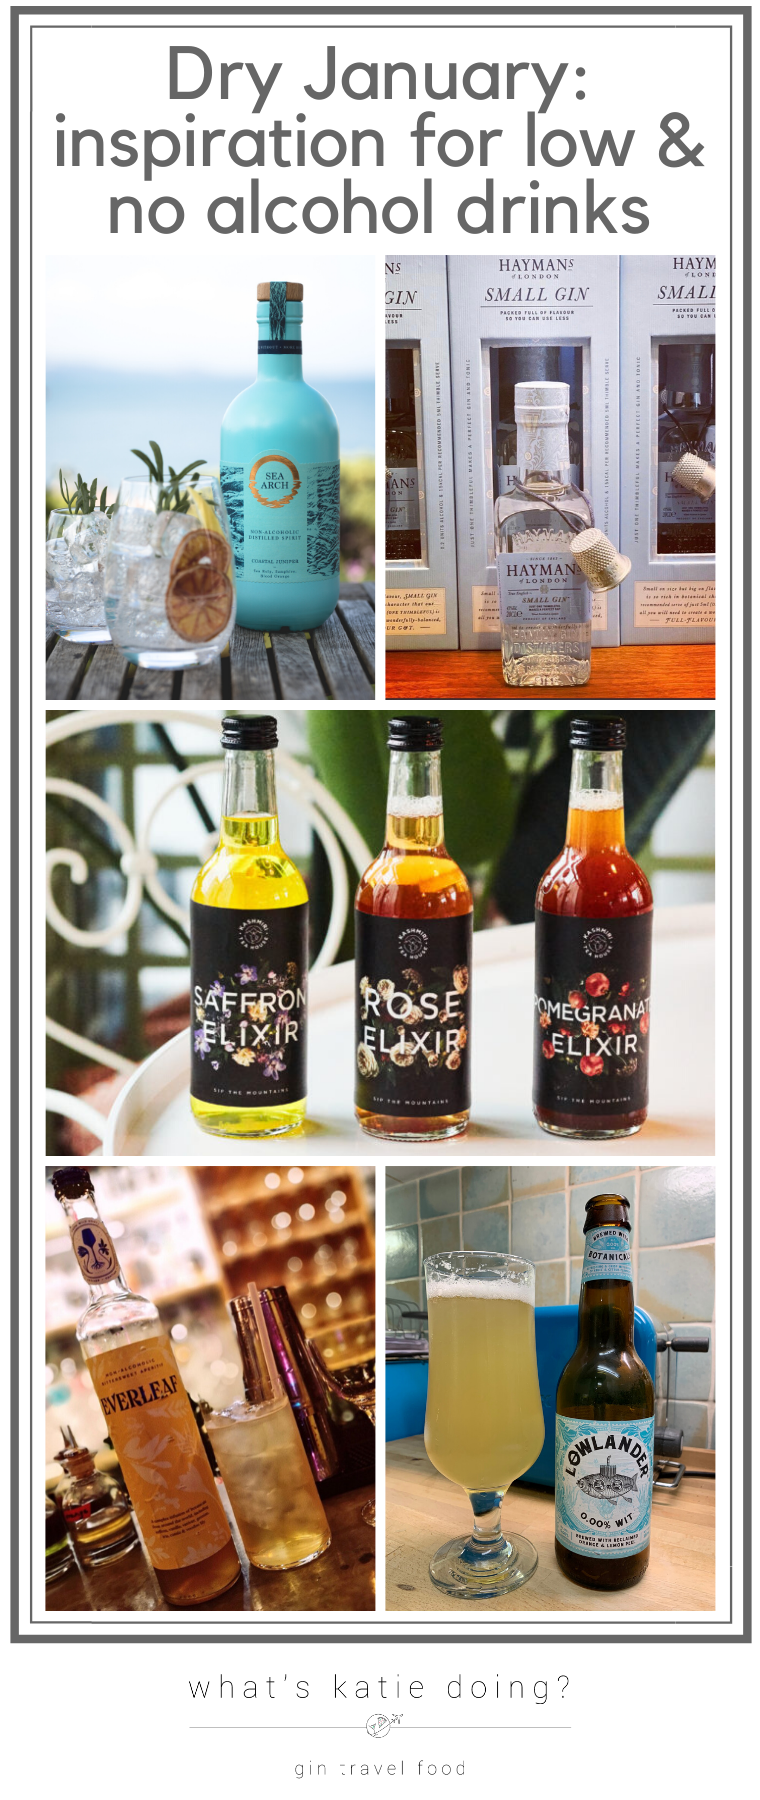 Dry January - inspiration for low and no alcohol drinks